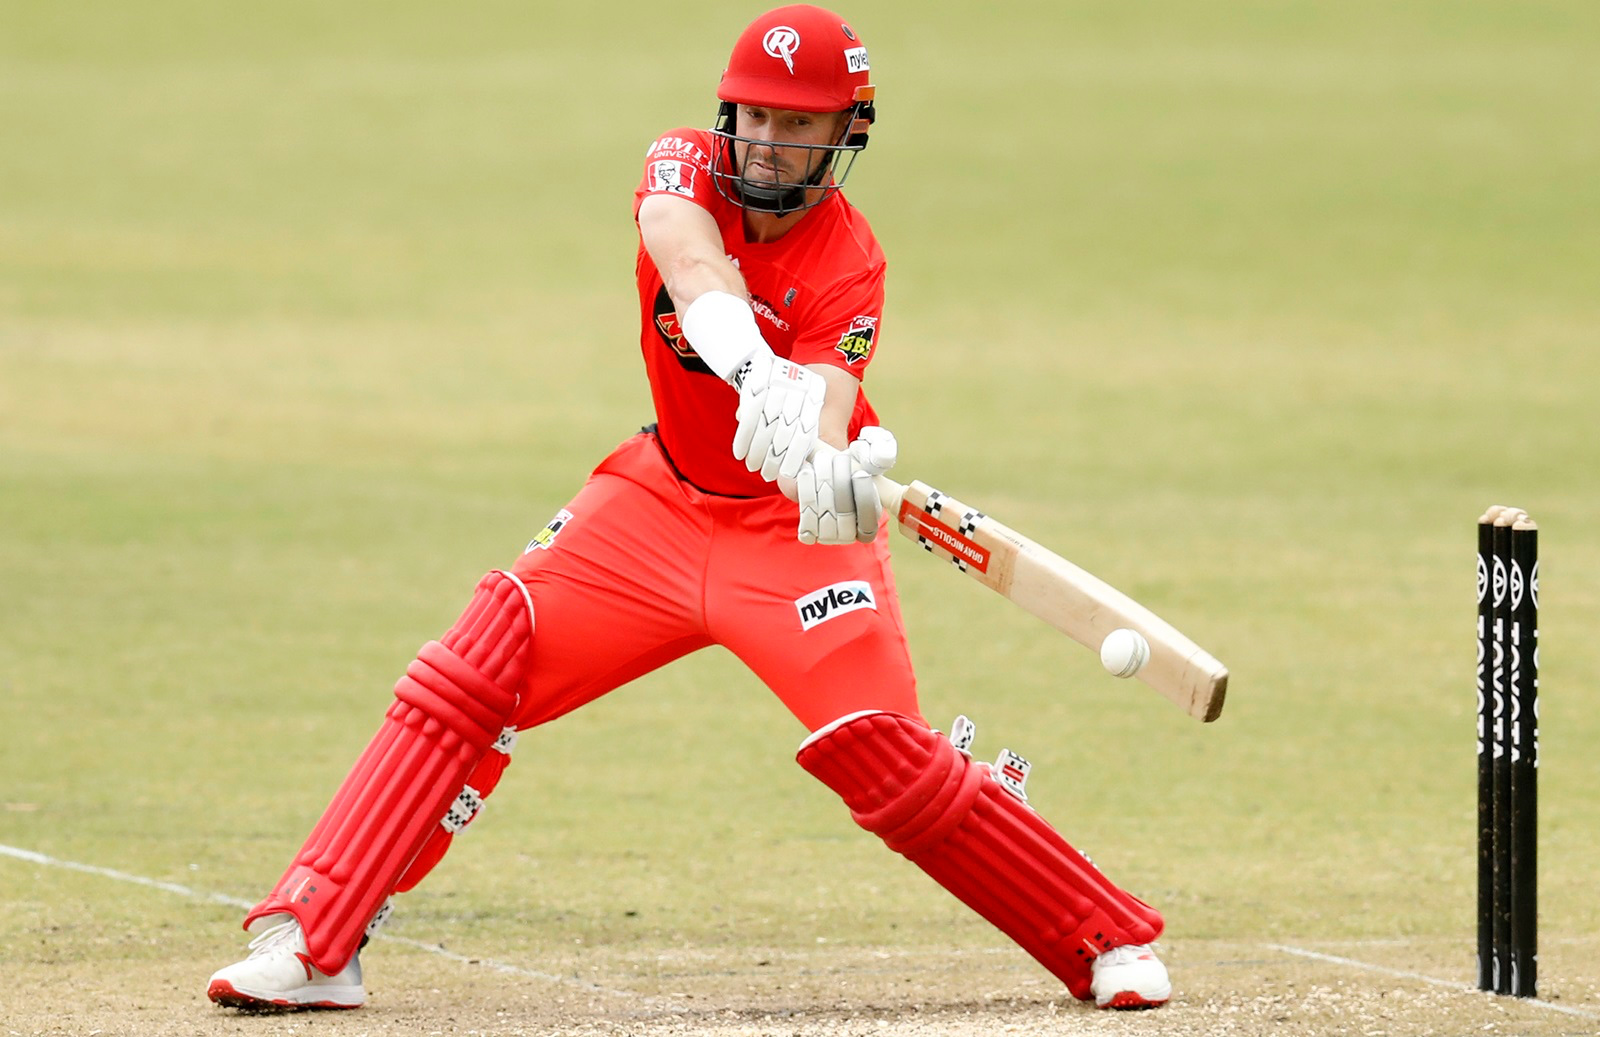 Shaun Marsh Melbourne Renegades